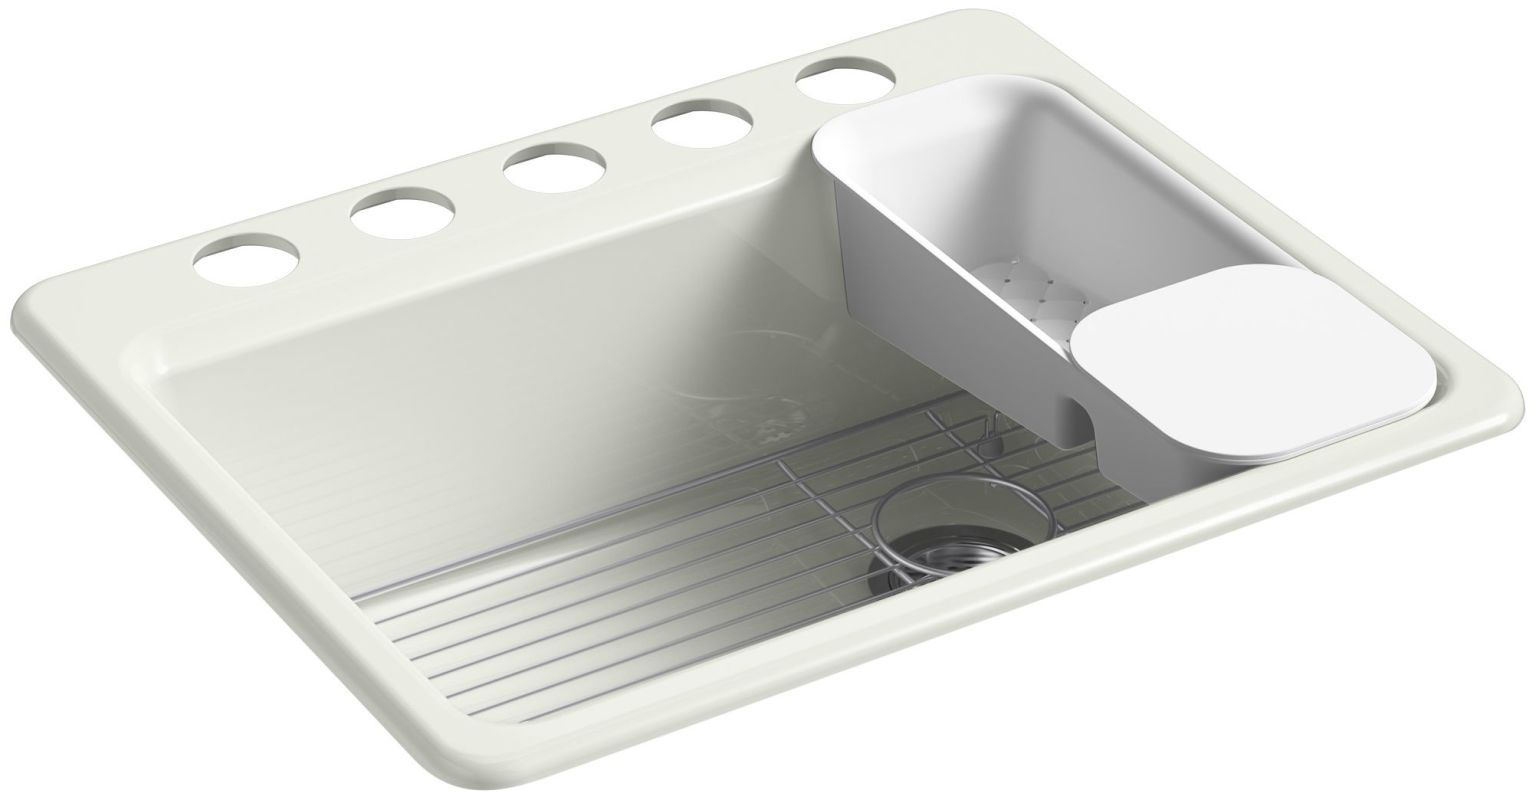 kohler k 8668 5ua2 riverby 27 single basin cast iron kitchen sink for - Kohler Waschbecken Schneidebrett